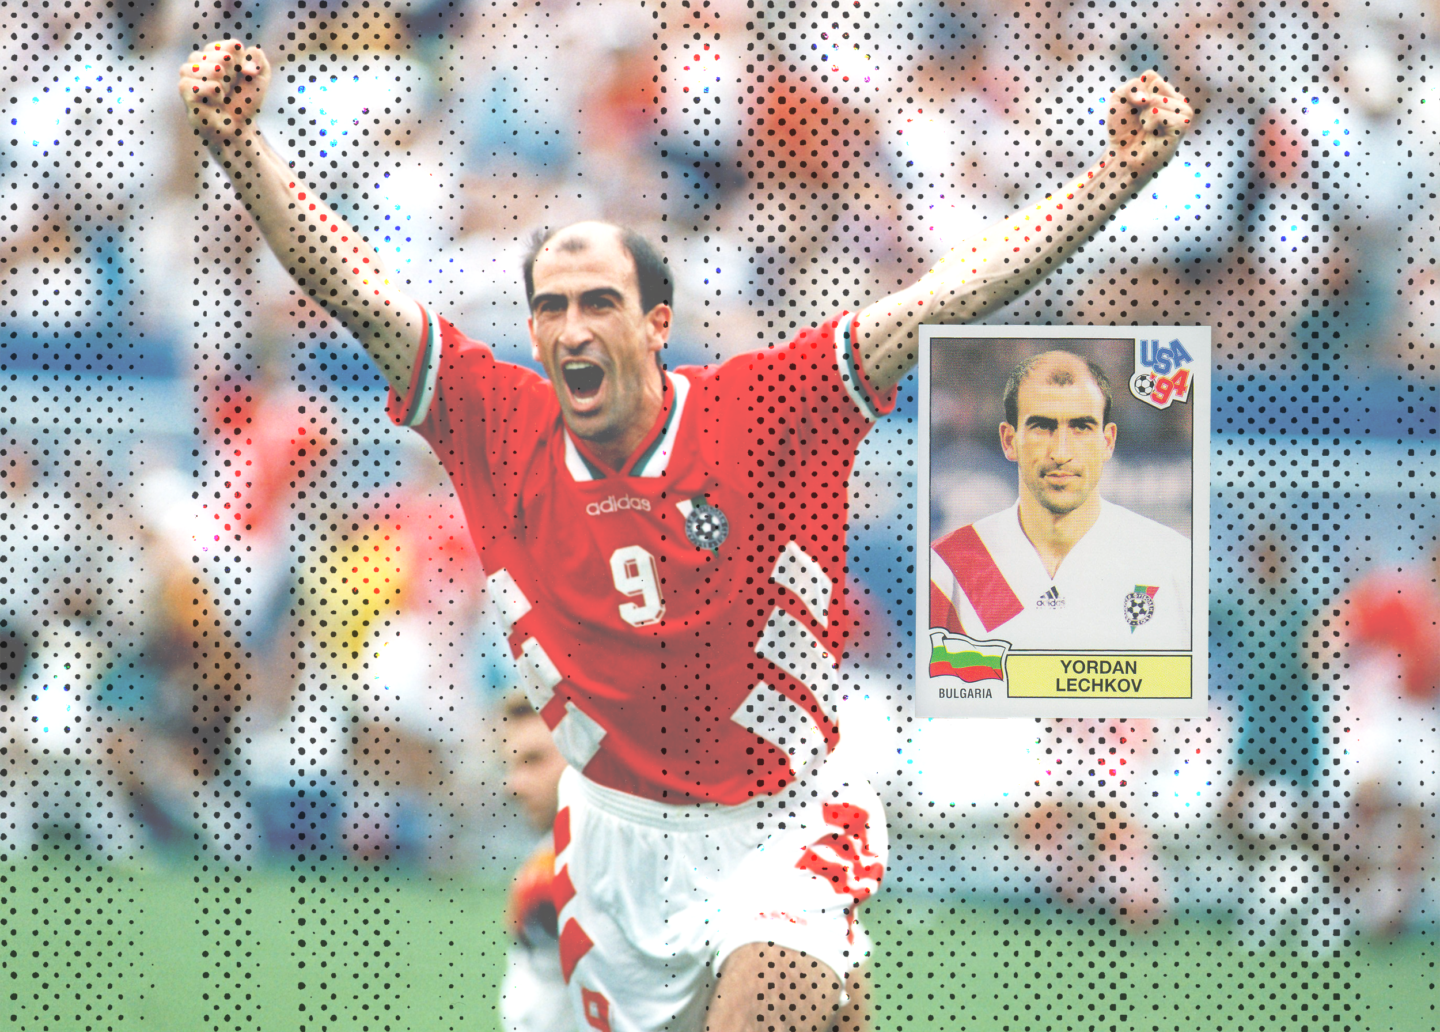 Yordan Letchkov - The unfulfilled career of a World Cup legend